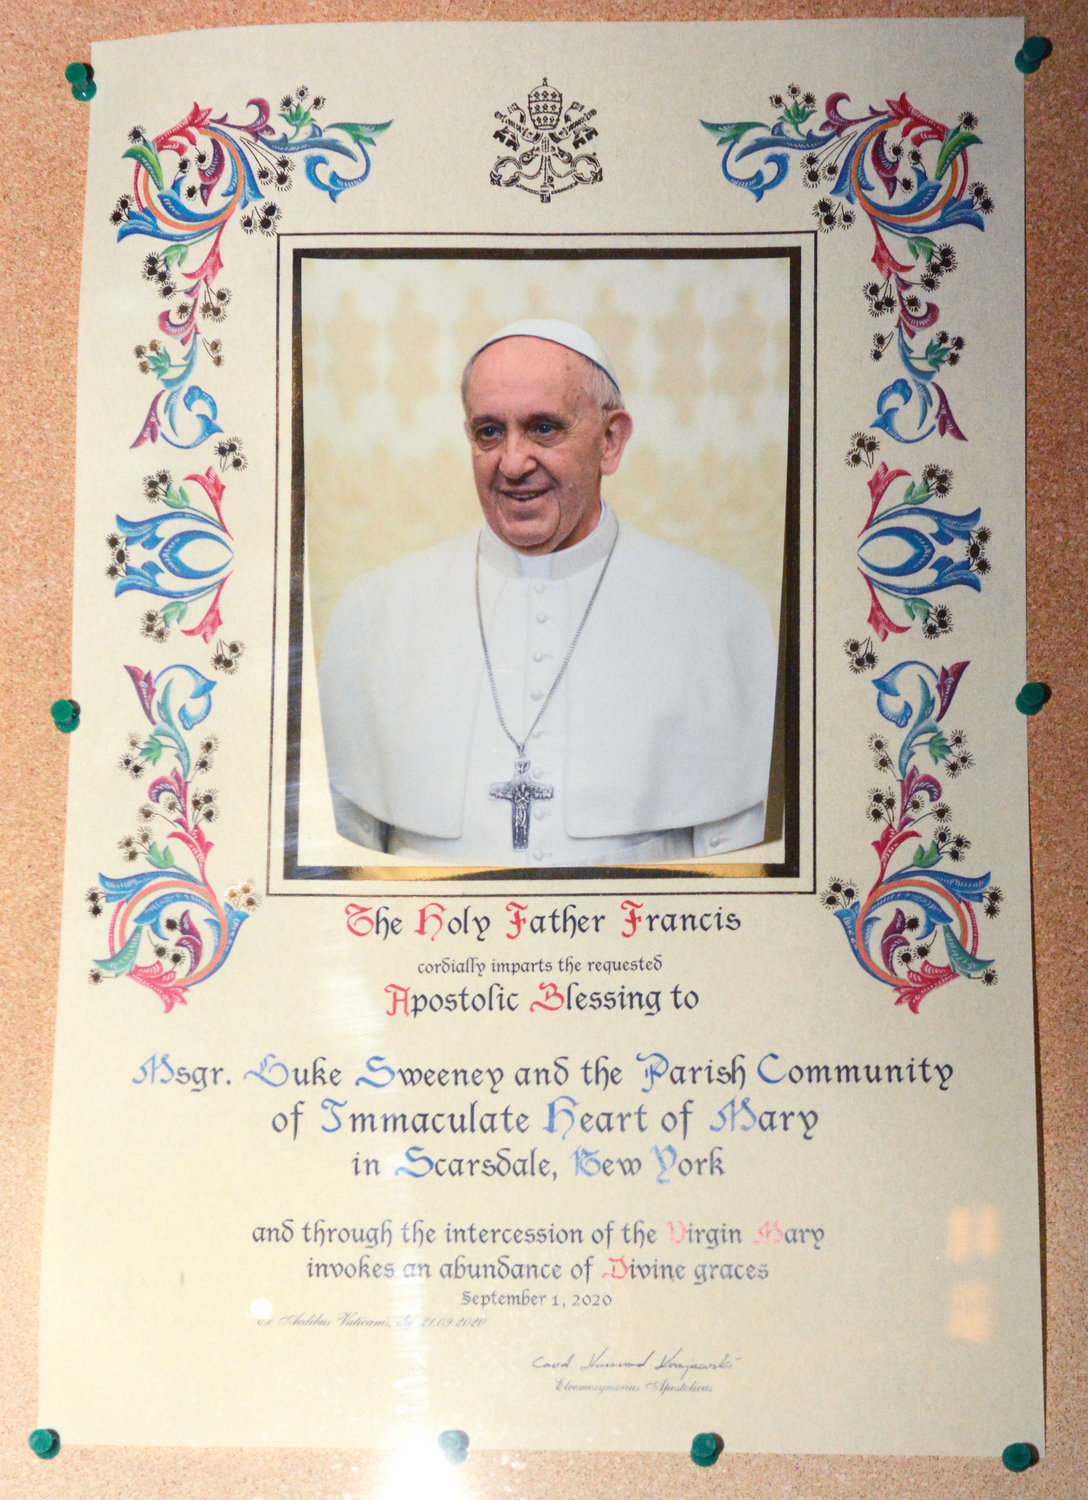 The Apostolic Blessing by Pope Francis was displayed for the occasion.